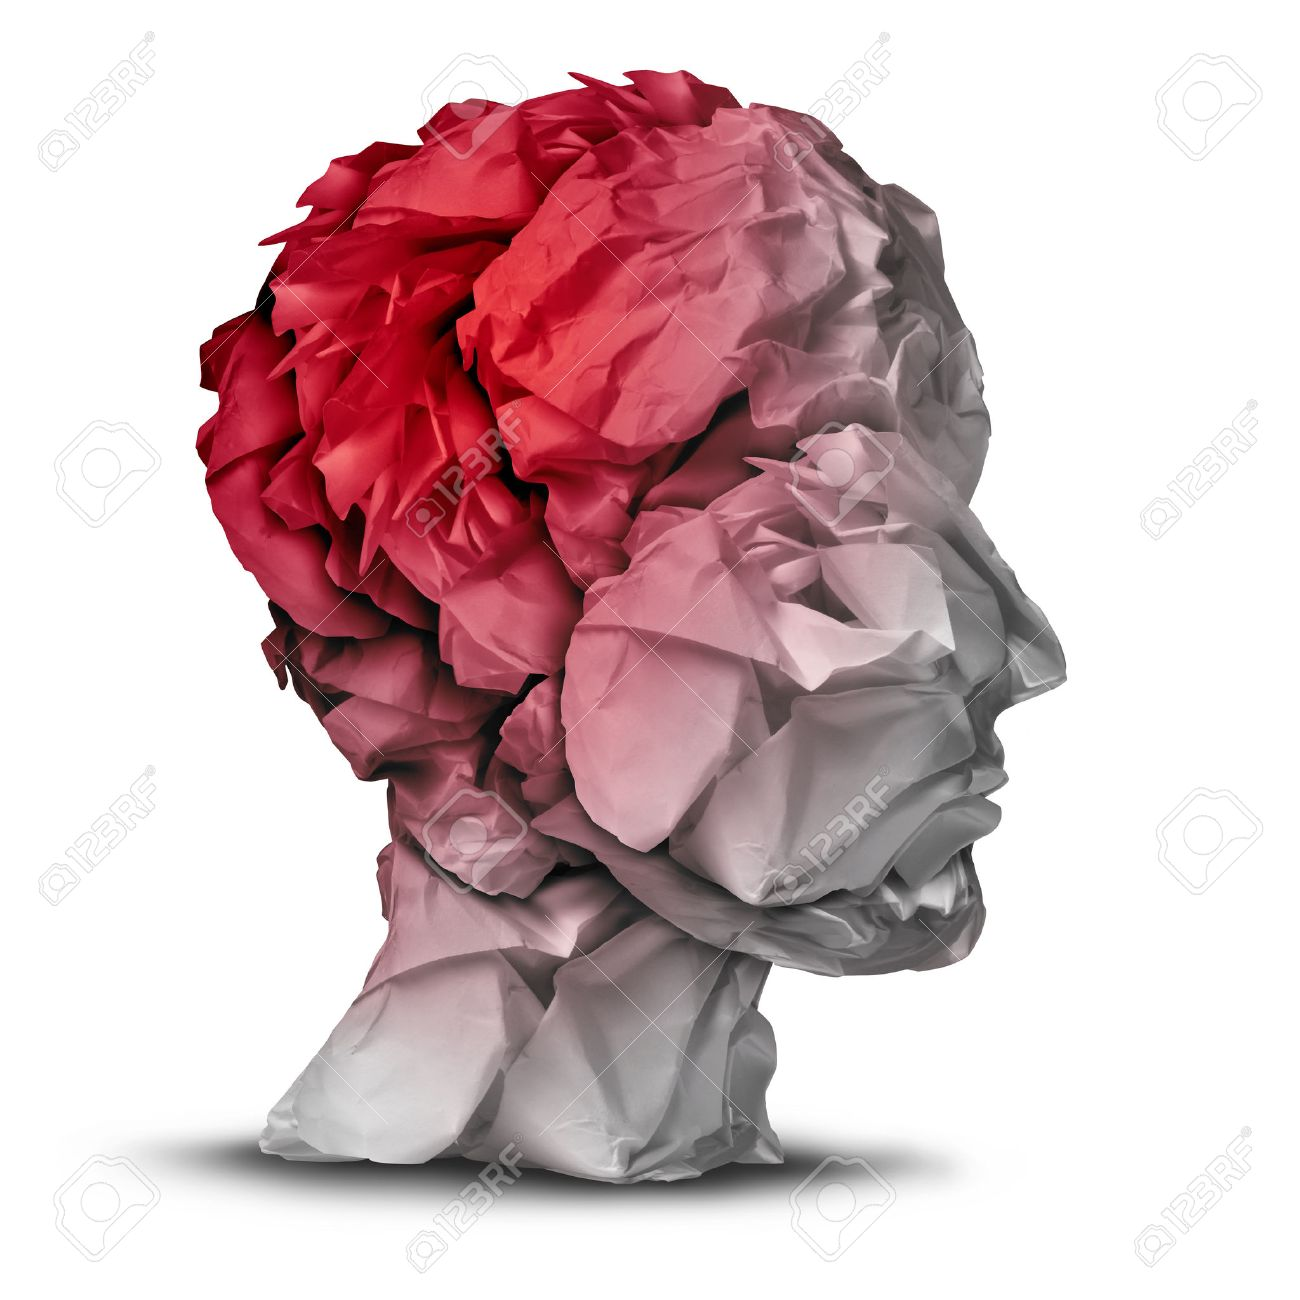 Head injury and traumatic brain accident medical and mental health care concept with a group of crumpled office paper shaped as a human mind with red highlighted area as a symbol of trauma problem - 30031239